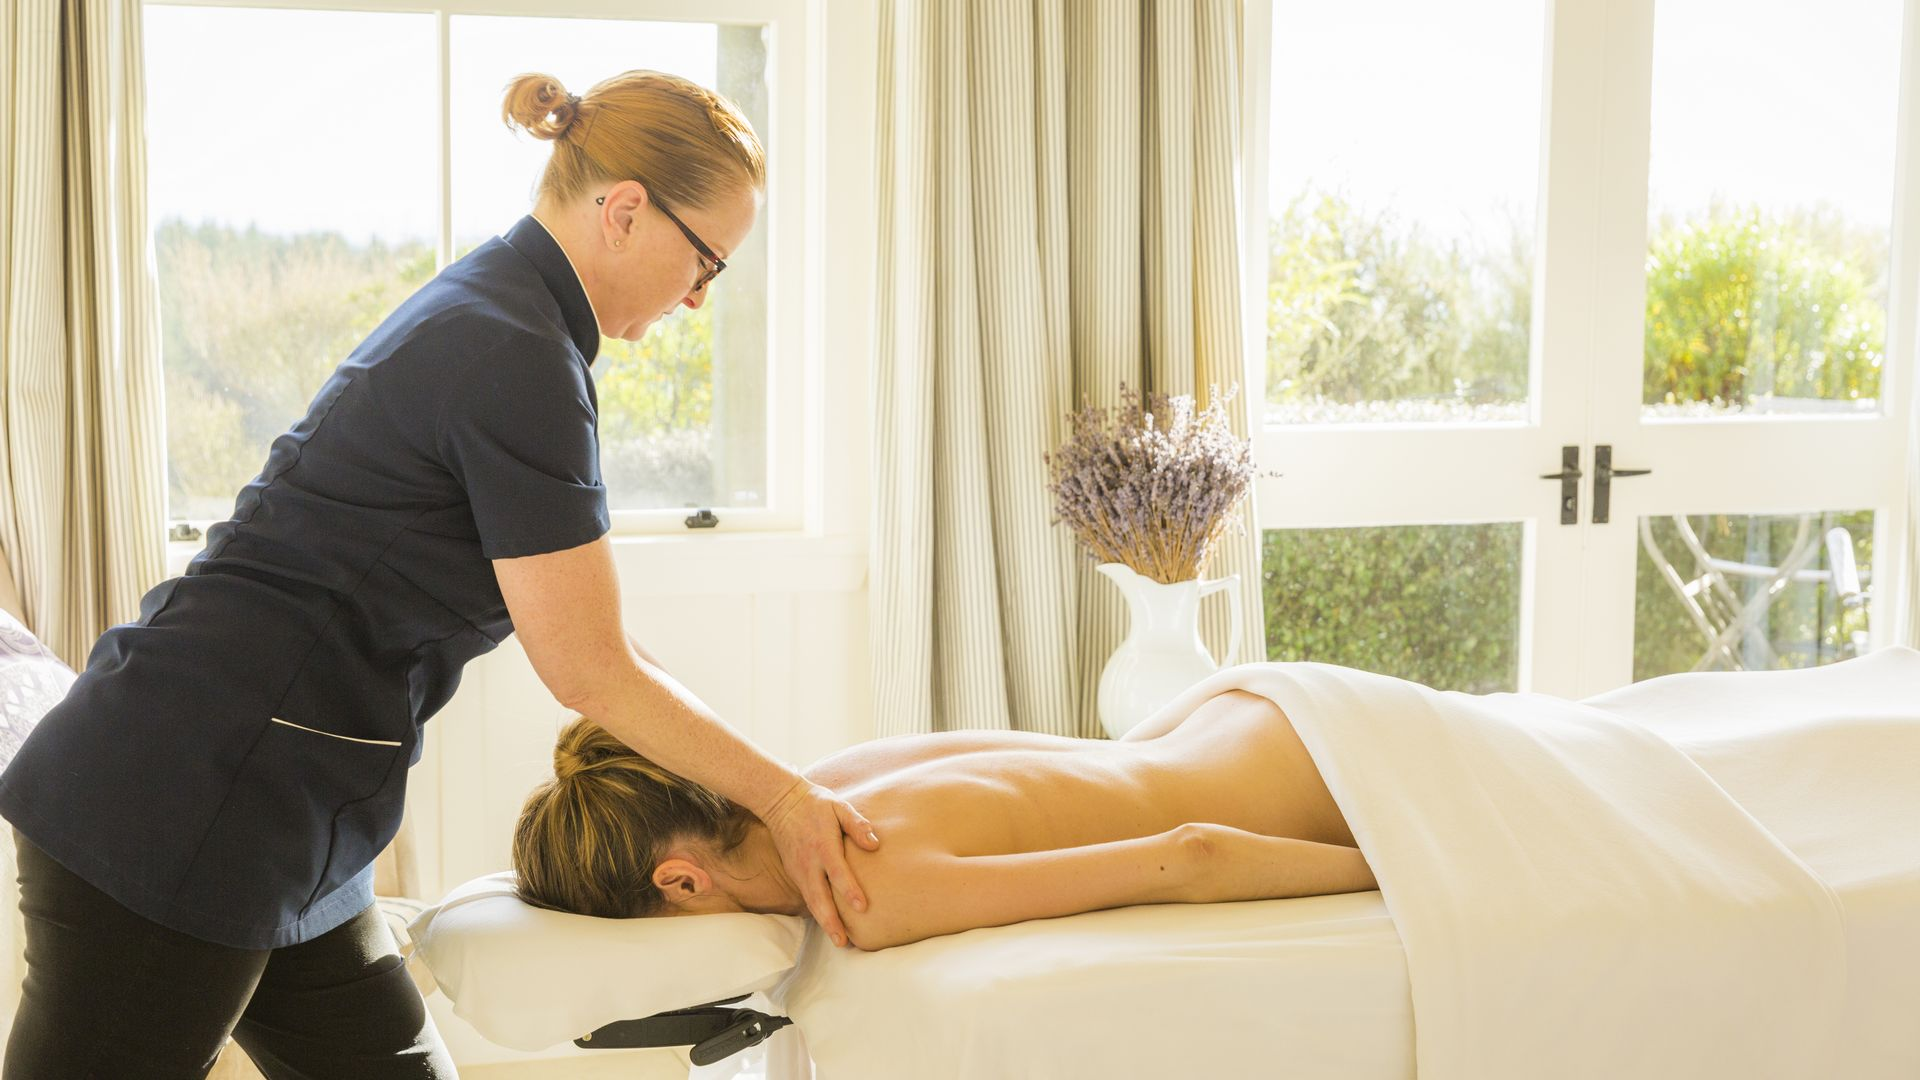 Relaxing spa treatment at Cape Kidnappers - pic courtesy Robertson Lodges